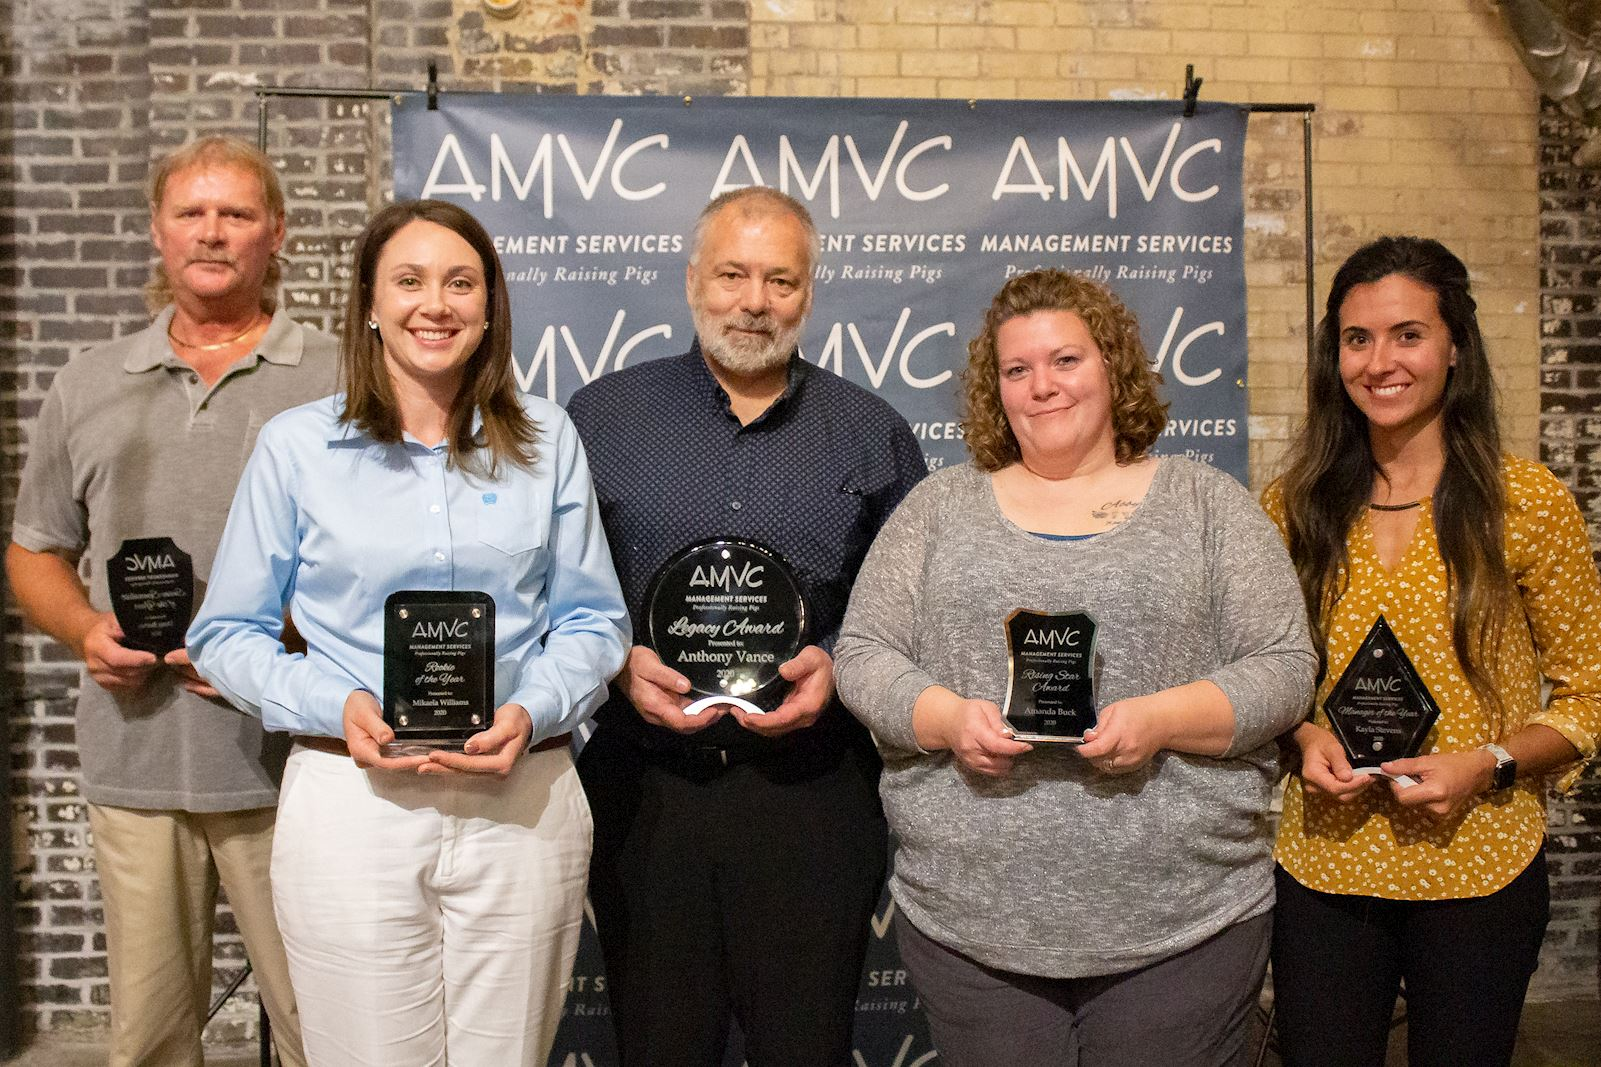 AMVC Management employee award winners